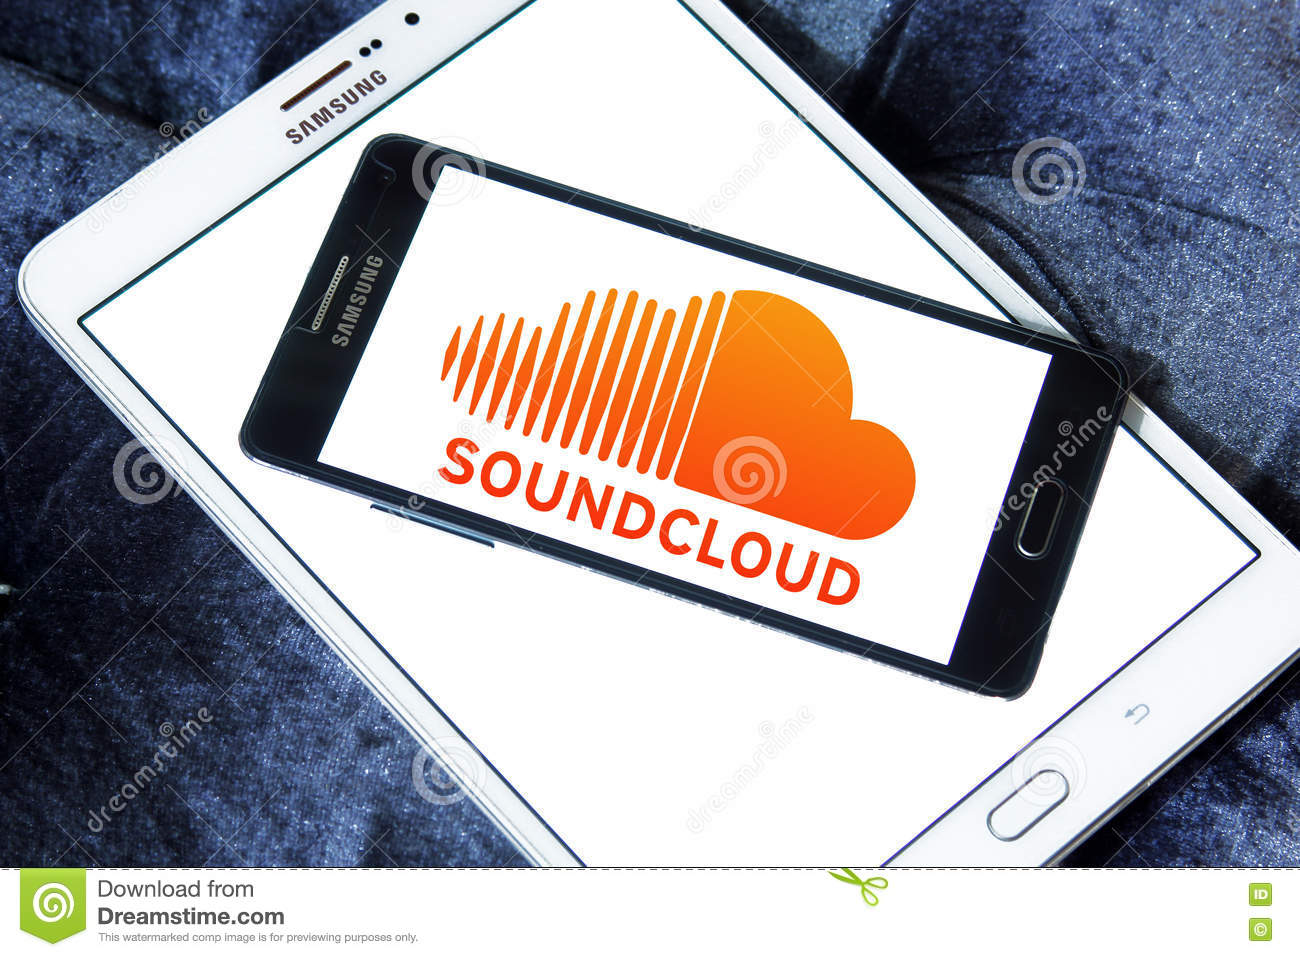 Soundcloud app logo editorial photography  Image of brands